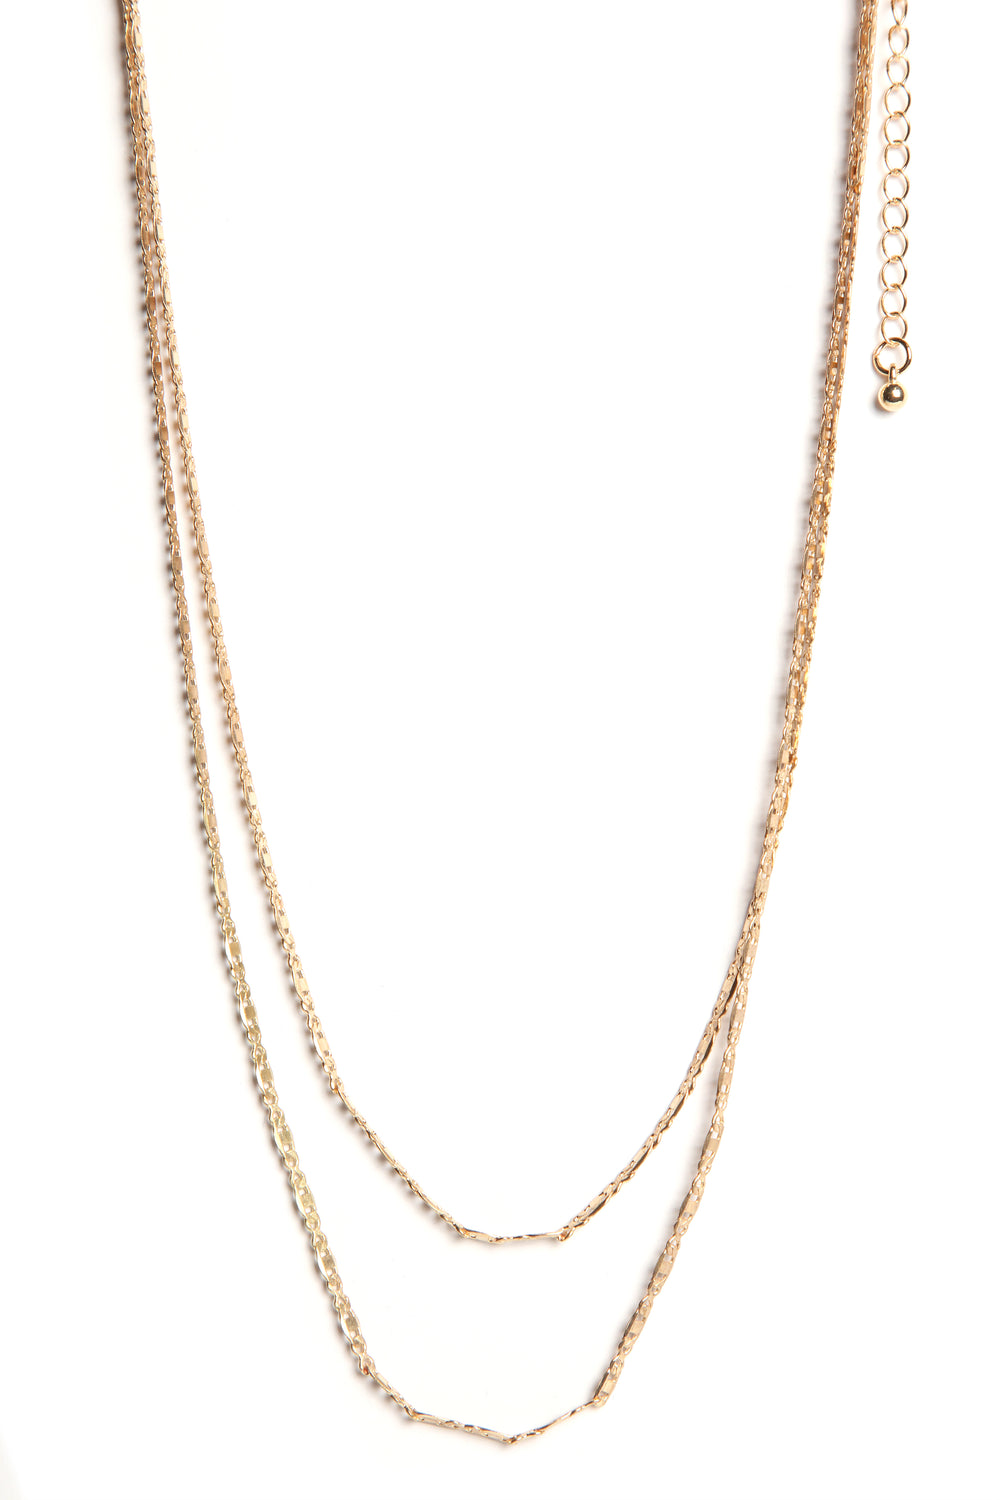 Dainty One Necklace - Gold